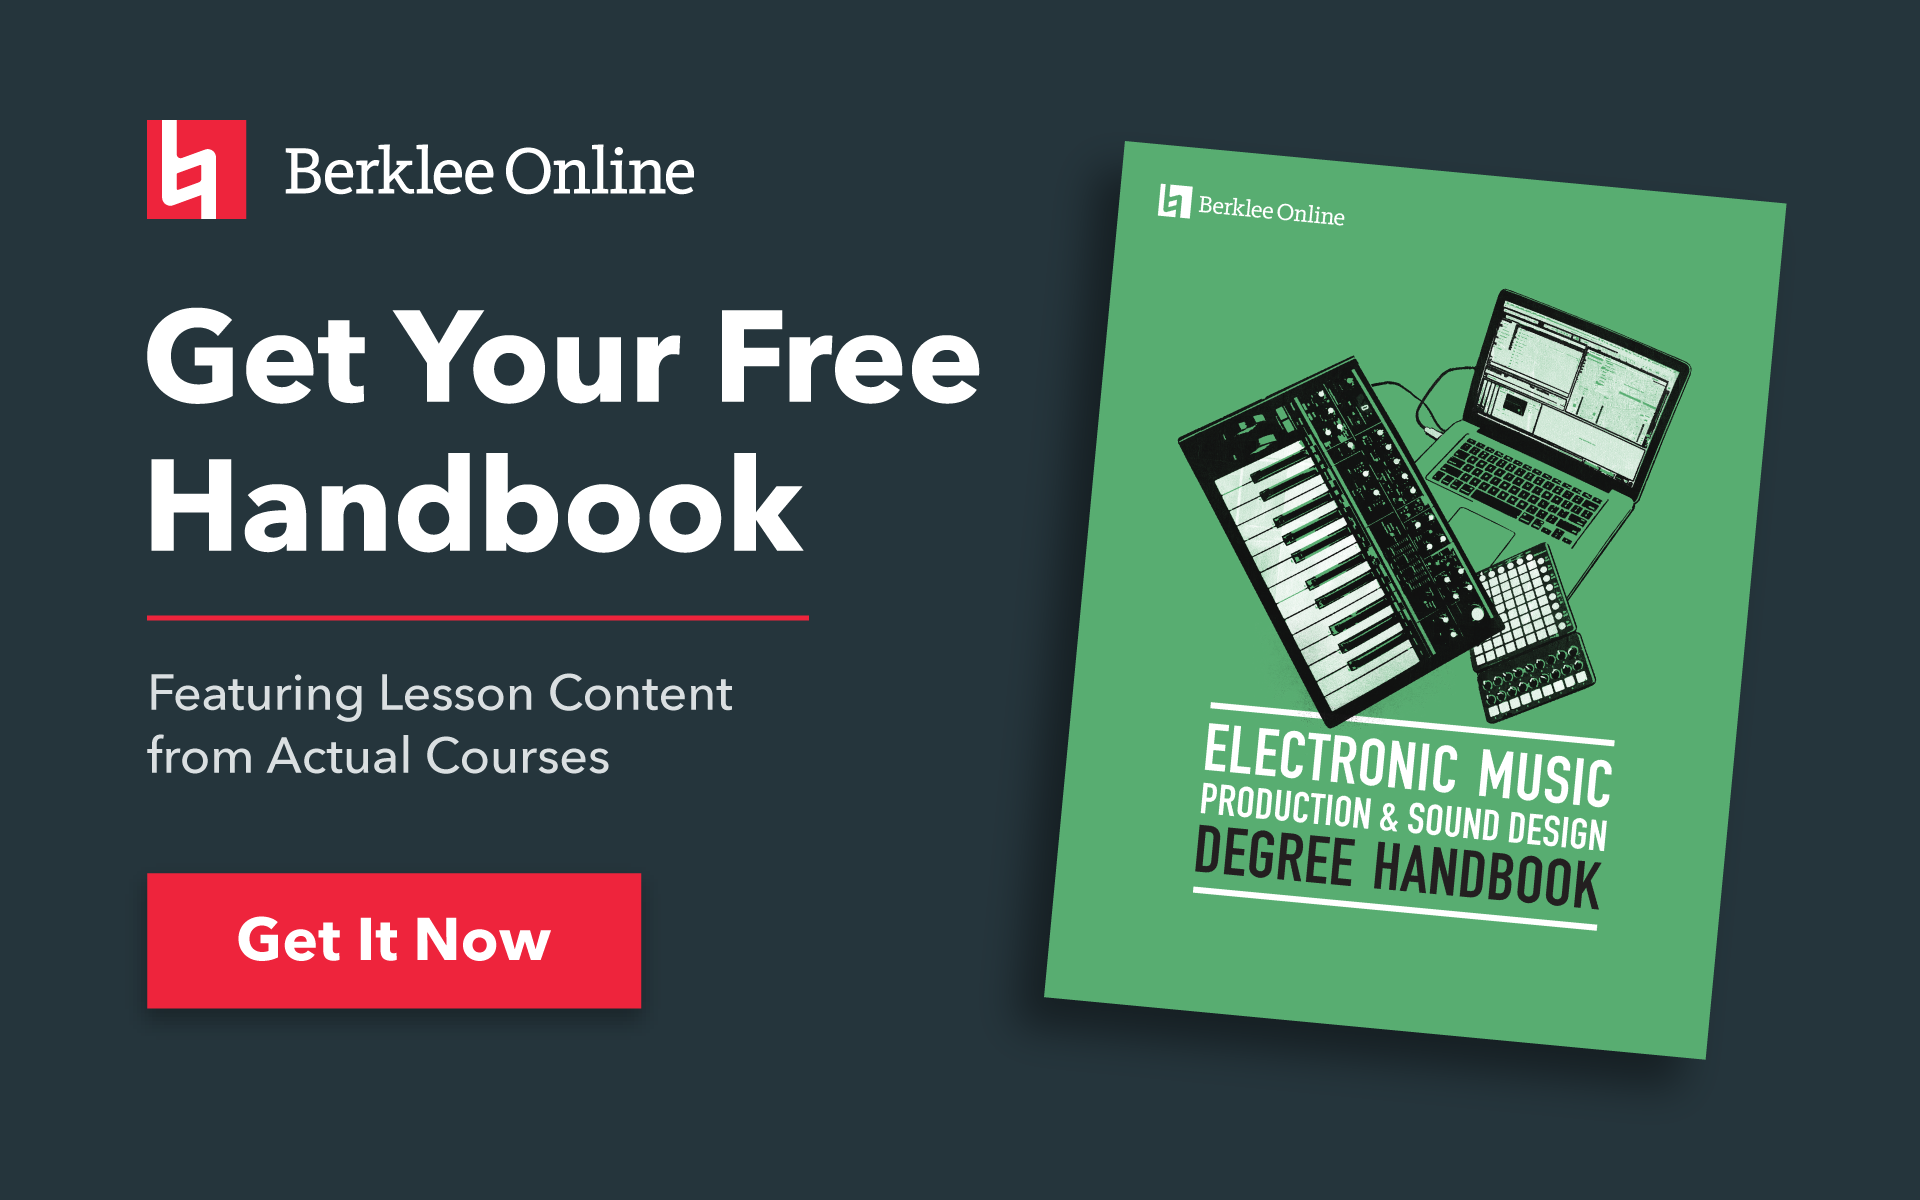 Get your free electronic music production handbook from Berklee Online.